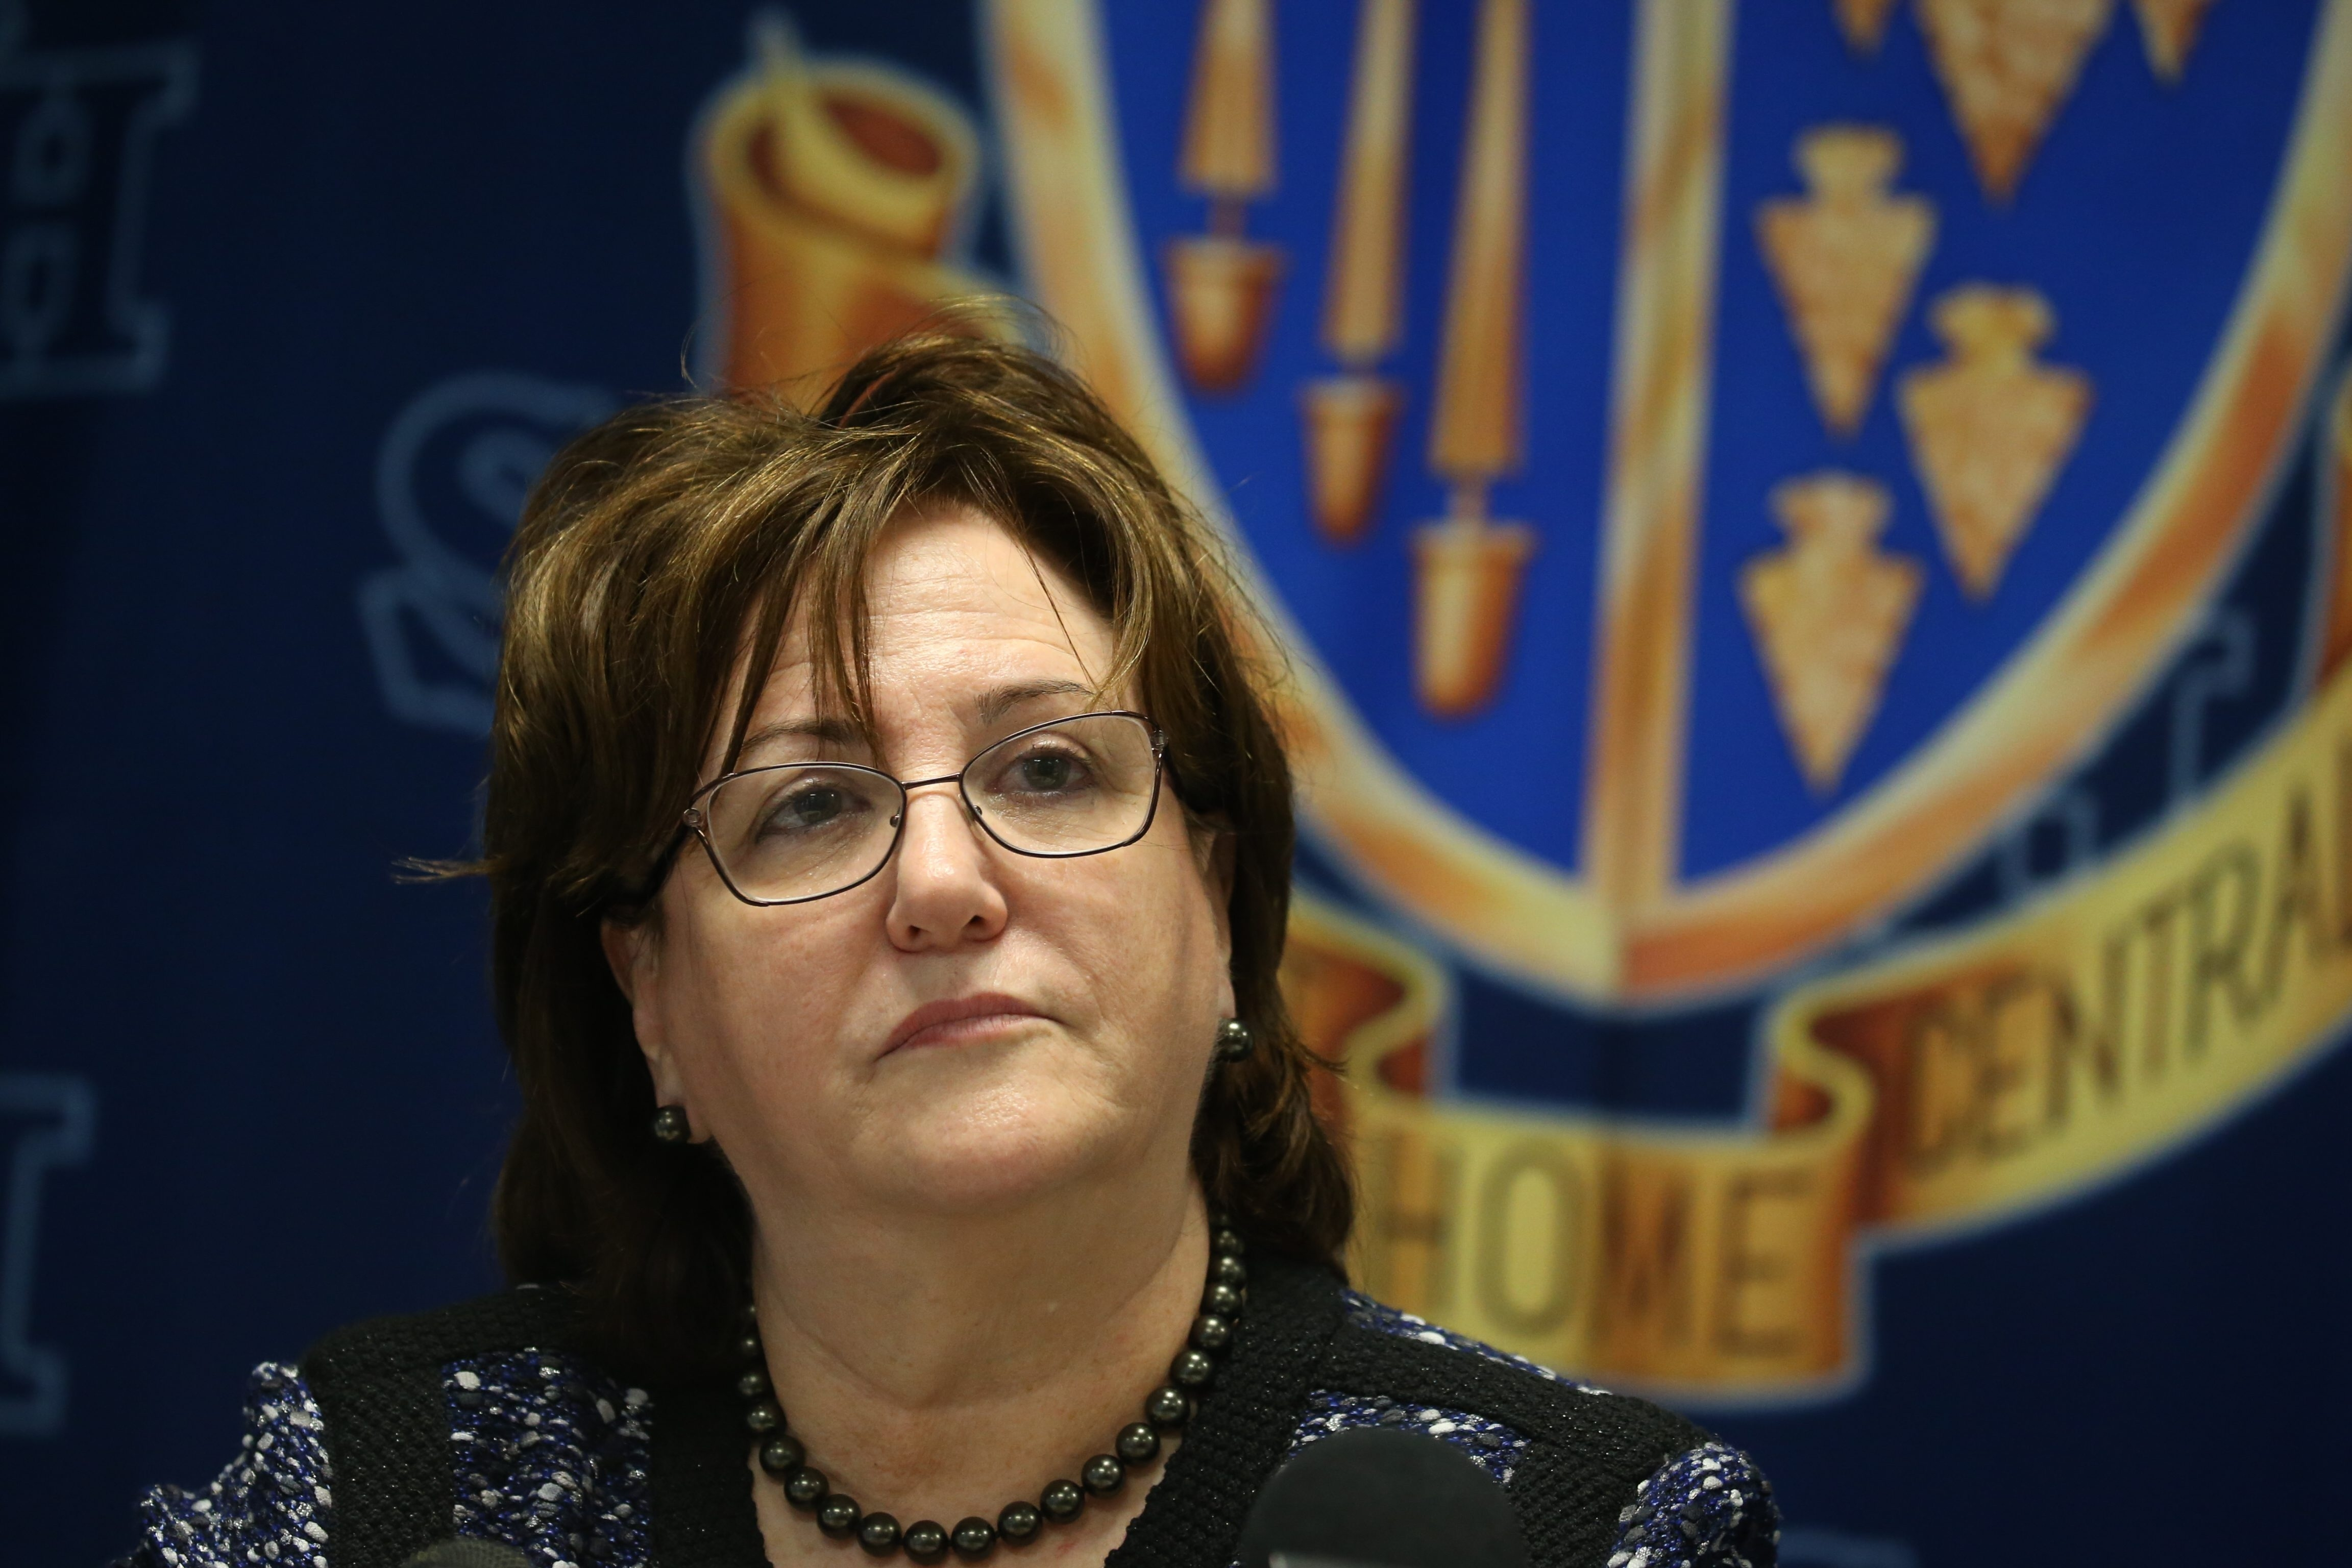 New York State Education Commissioner MaryEllen Elia speaks to the media after she visited Sweet Home Senior High School for the first day of school in Amherst, N.Y., on Wednesday,  Sept. 9, 2015.  (John Hickey/Buffalo News)